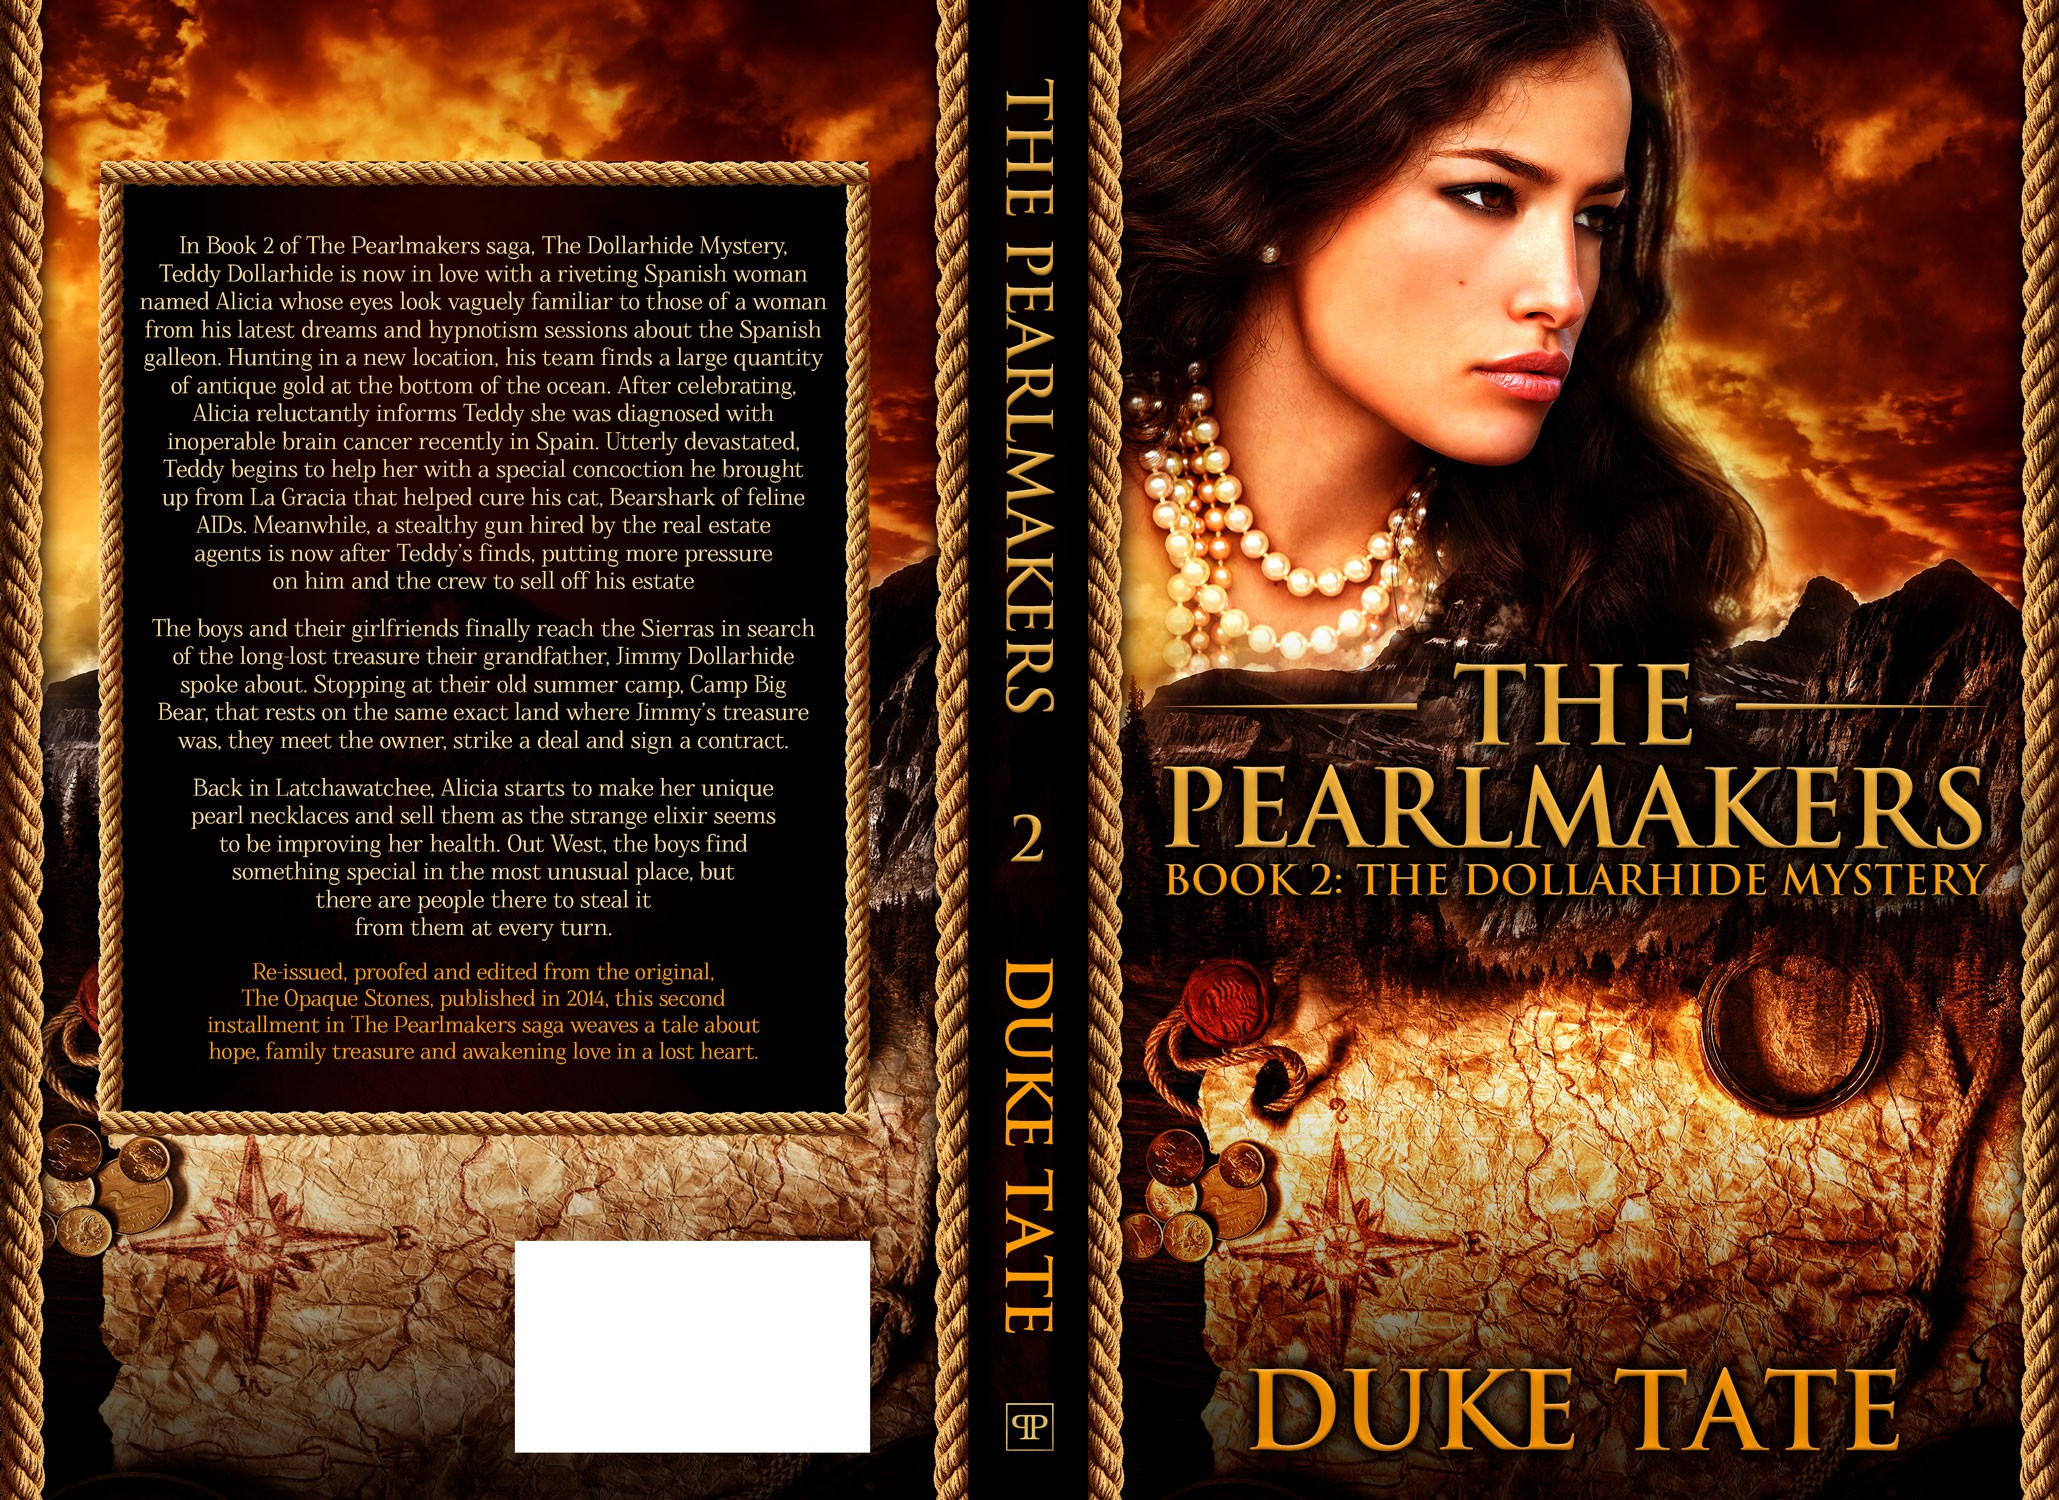 THE PEARLMAKERS THE DOLLARHIDE MYSTERY - Book 02